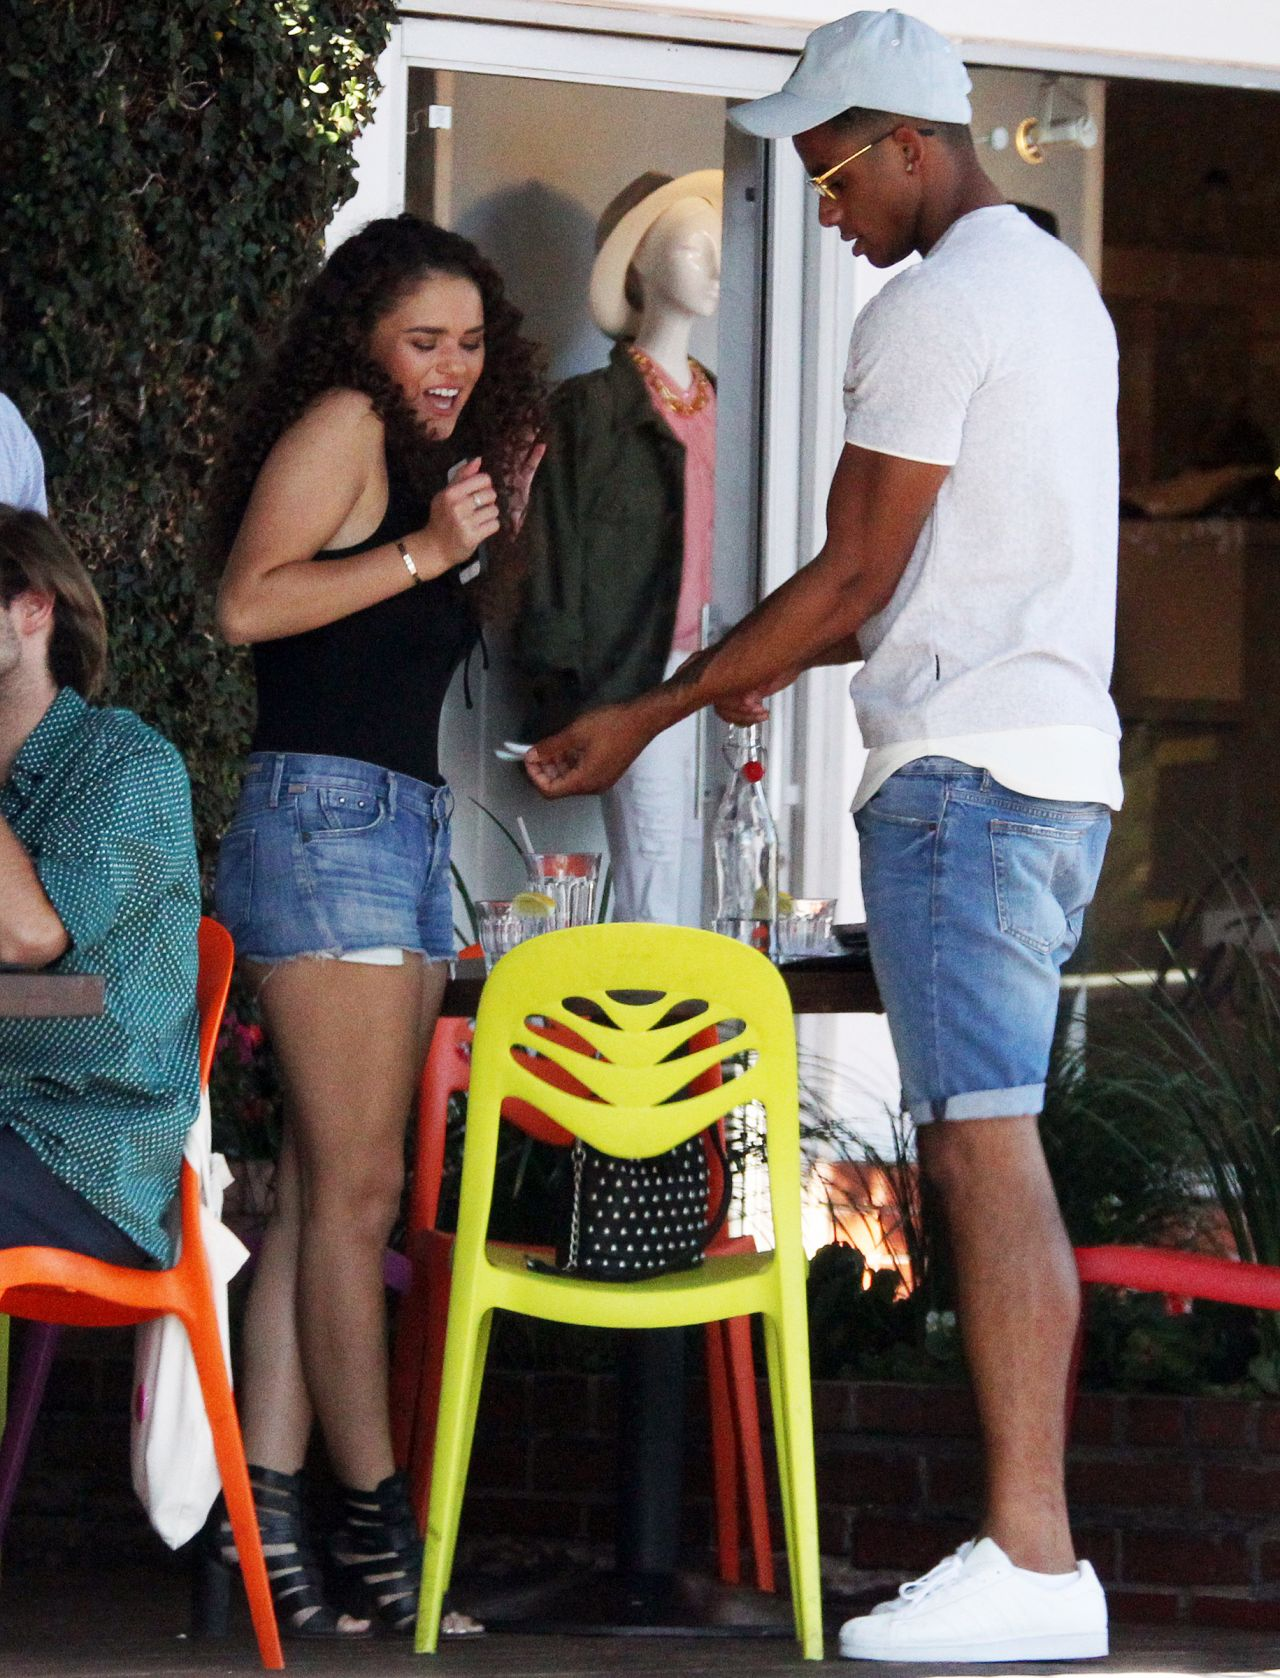 Madison Pettis In Jeans Shorts Fred Segal S Cafe Mauro S